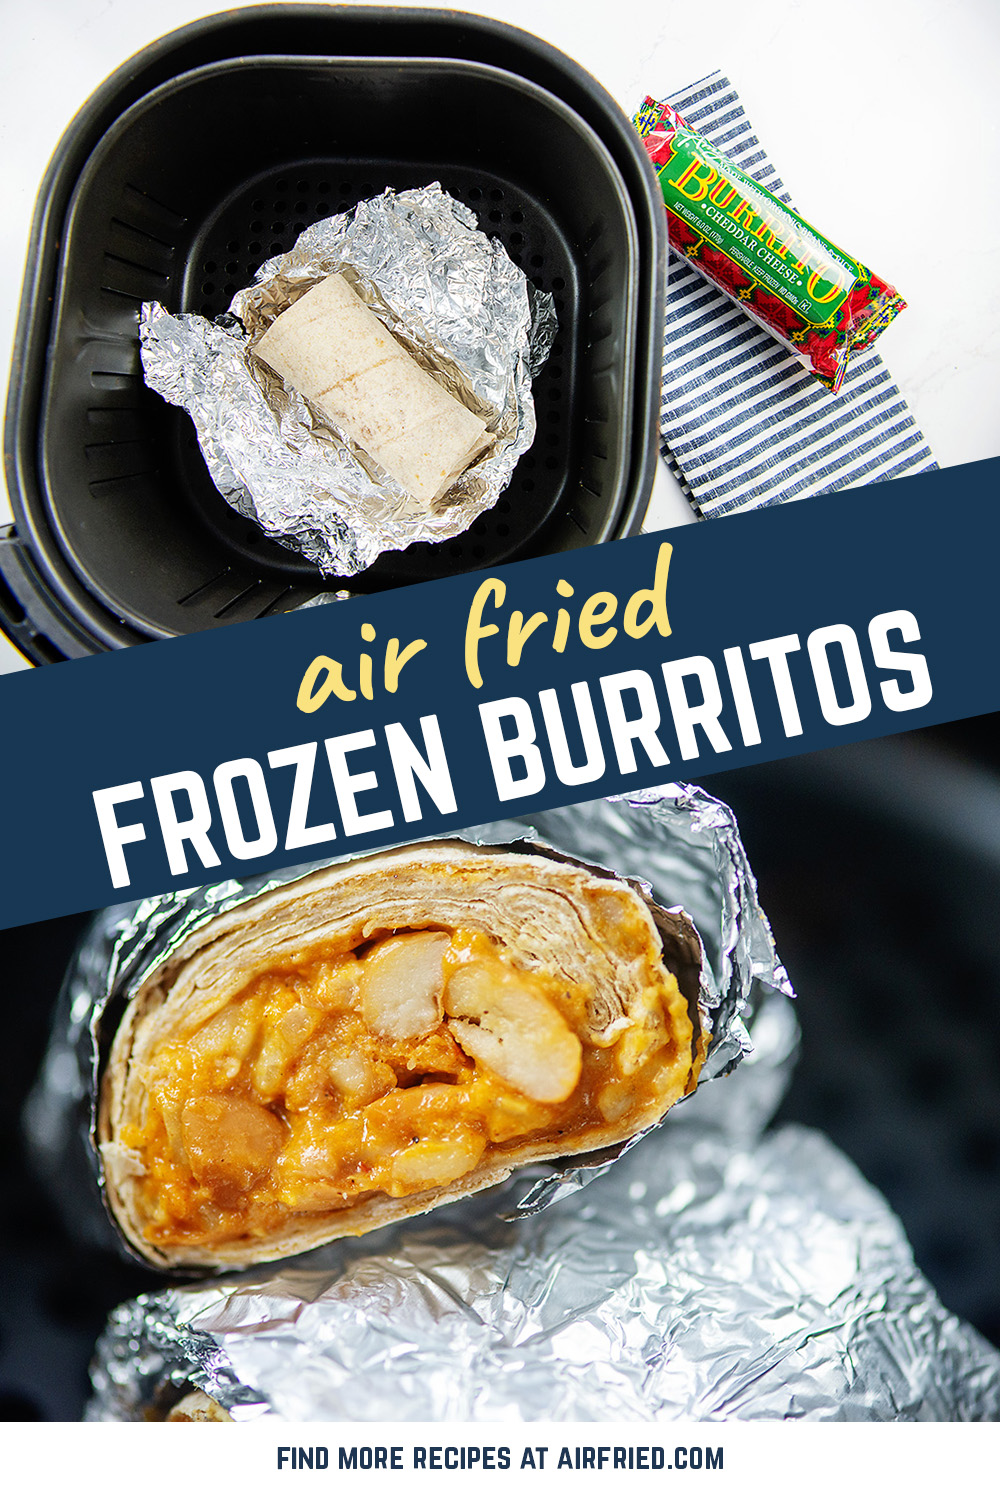 Frozen burritos are so easy in the air fryer! Two methods for cooking them and both are better than the microwave!